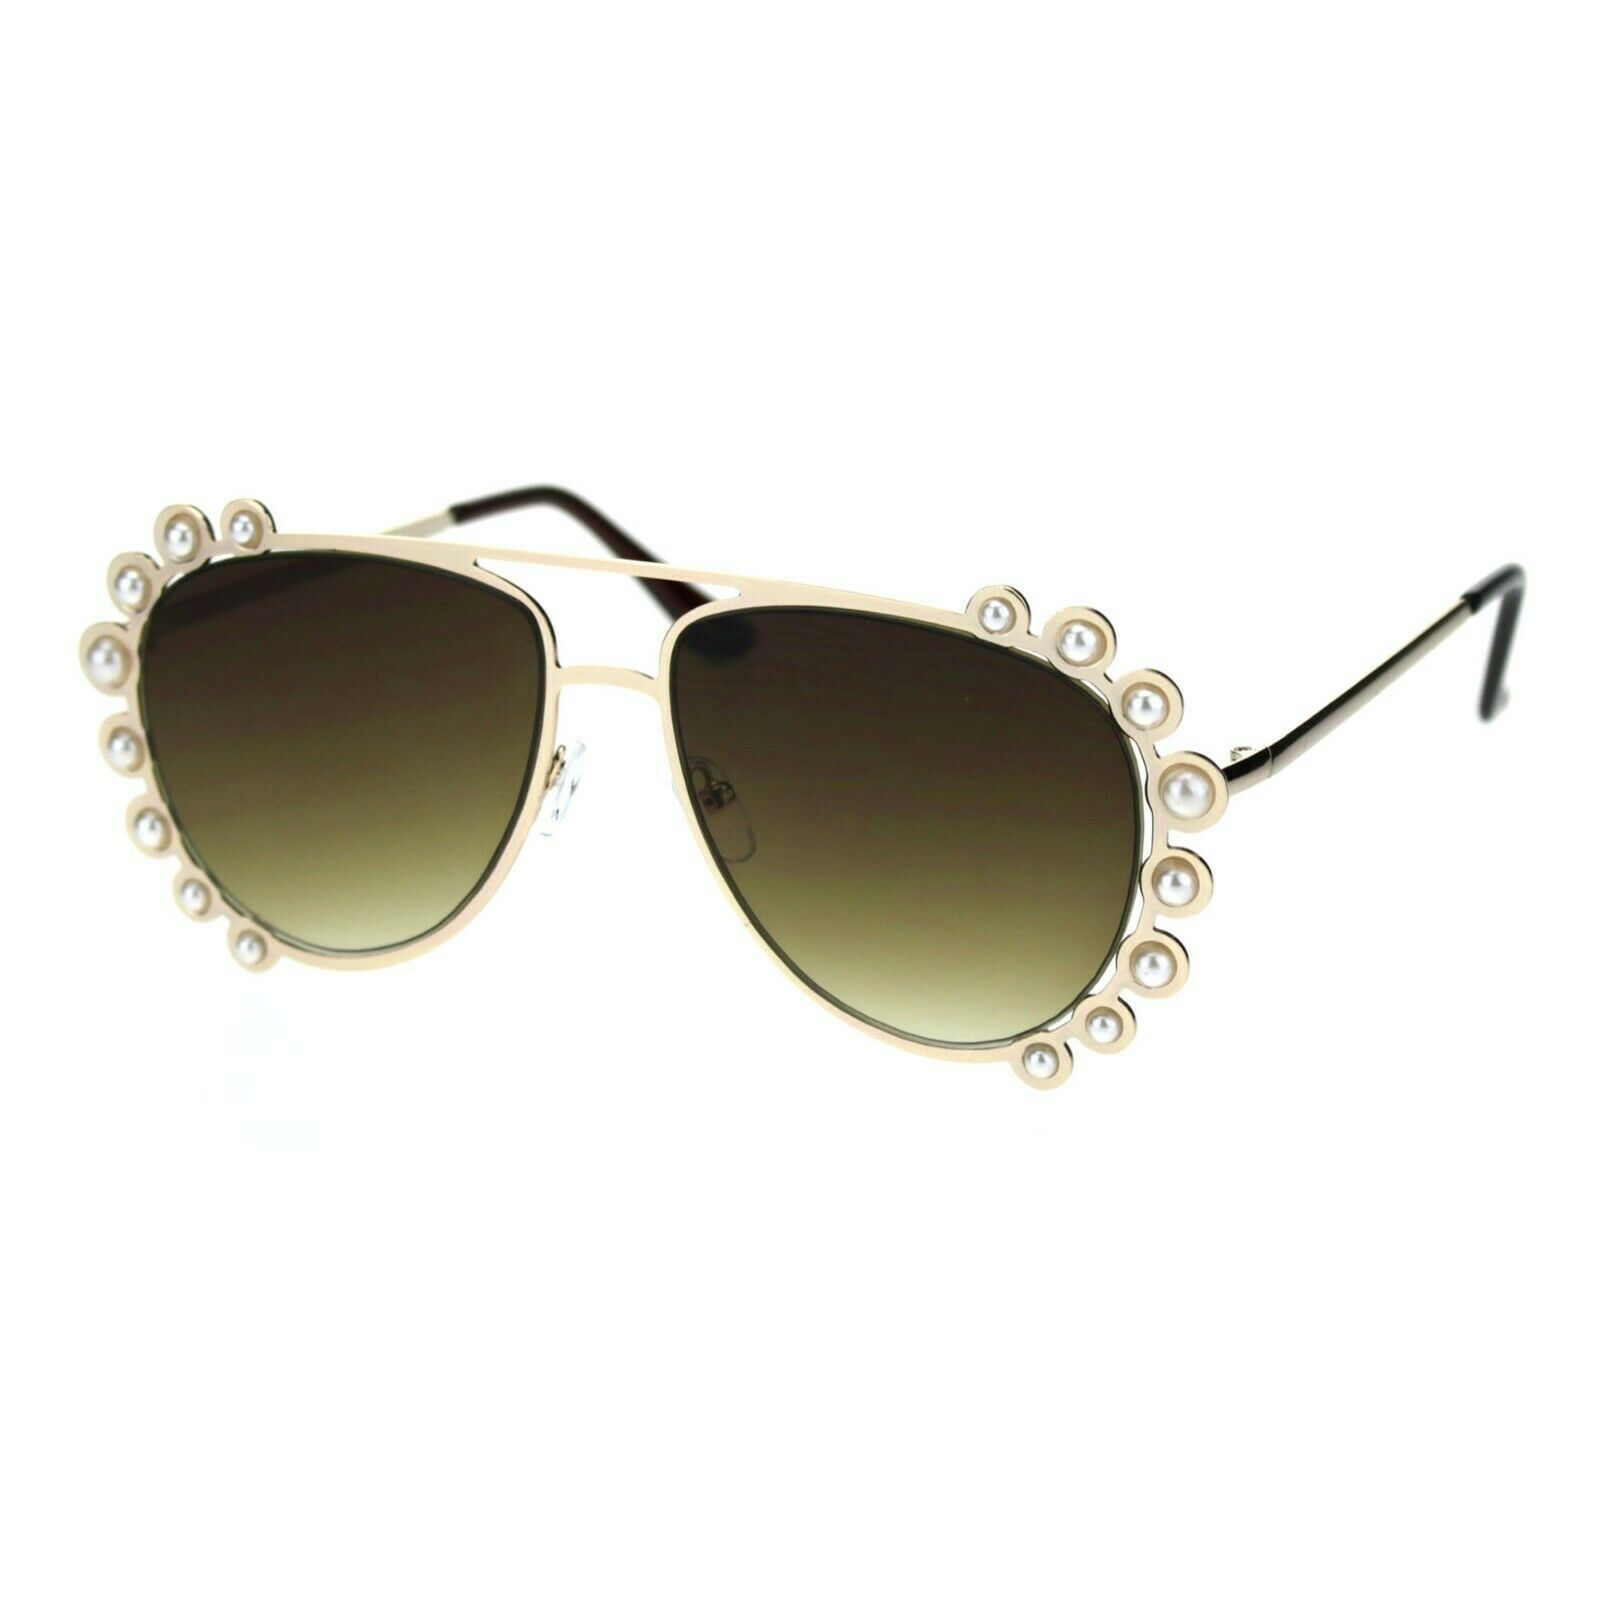 Pearl Studded Aviator Sunglasses Womens Fashion Shades UV 400